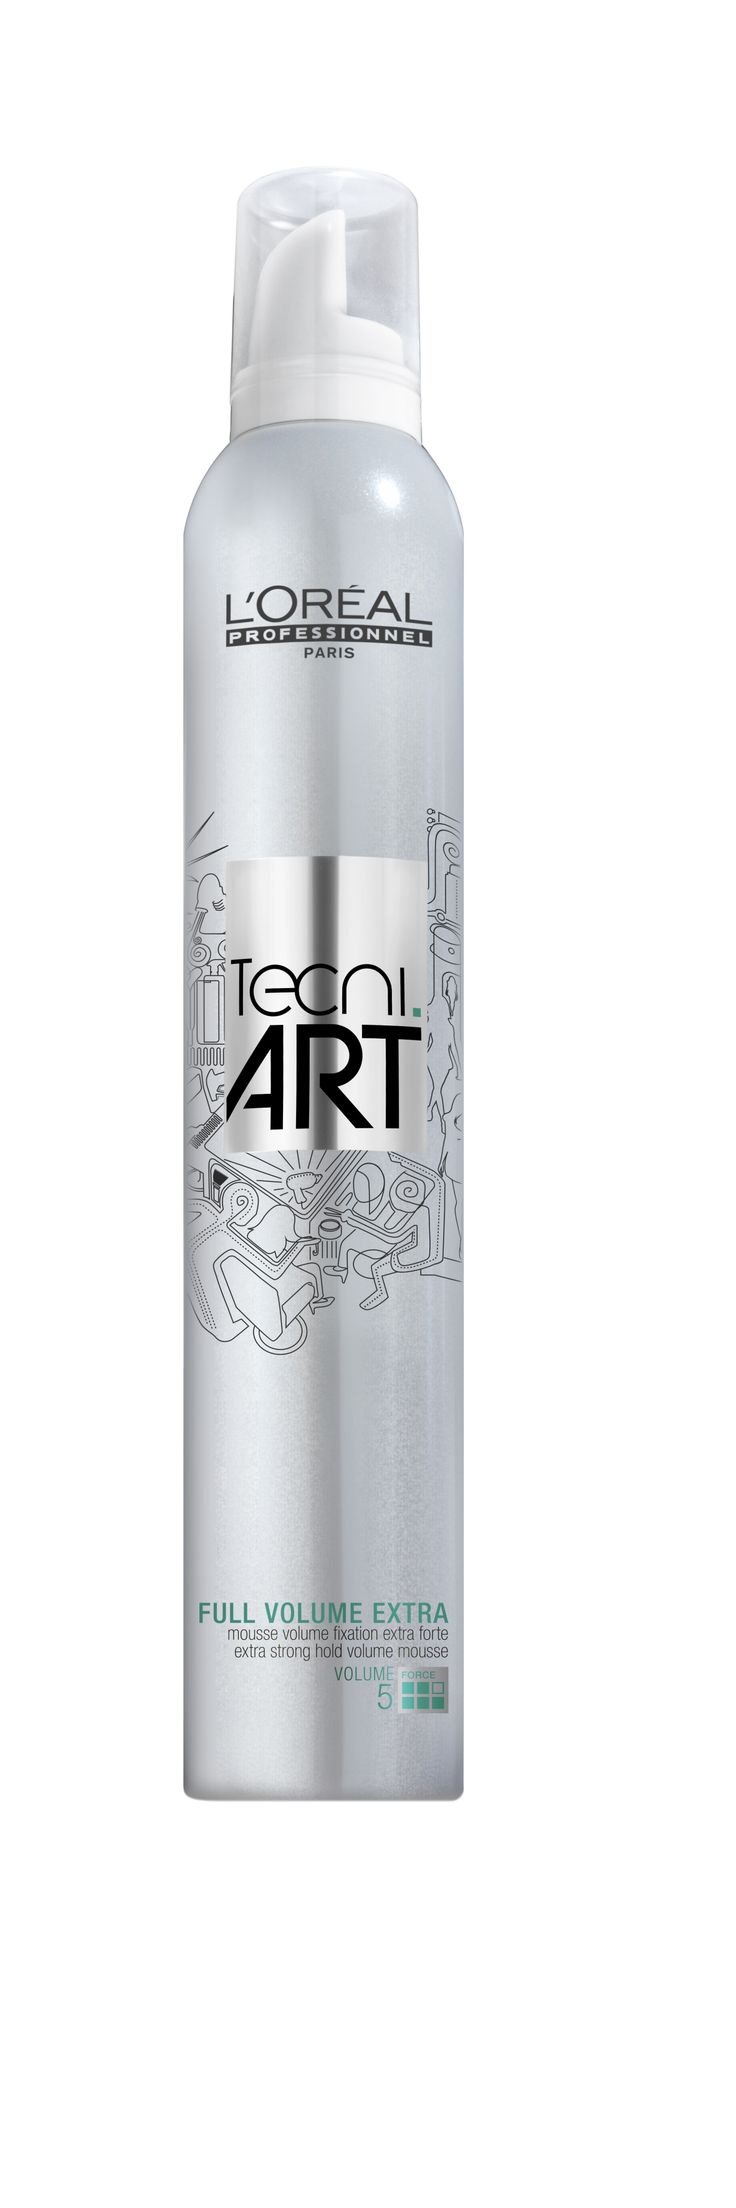 L'Oréal Professionnel Tecni.ART Volume - Full Volume Extra - extra strong hold volume mousse 400ml.